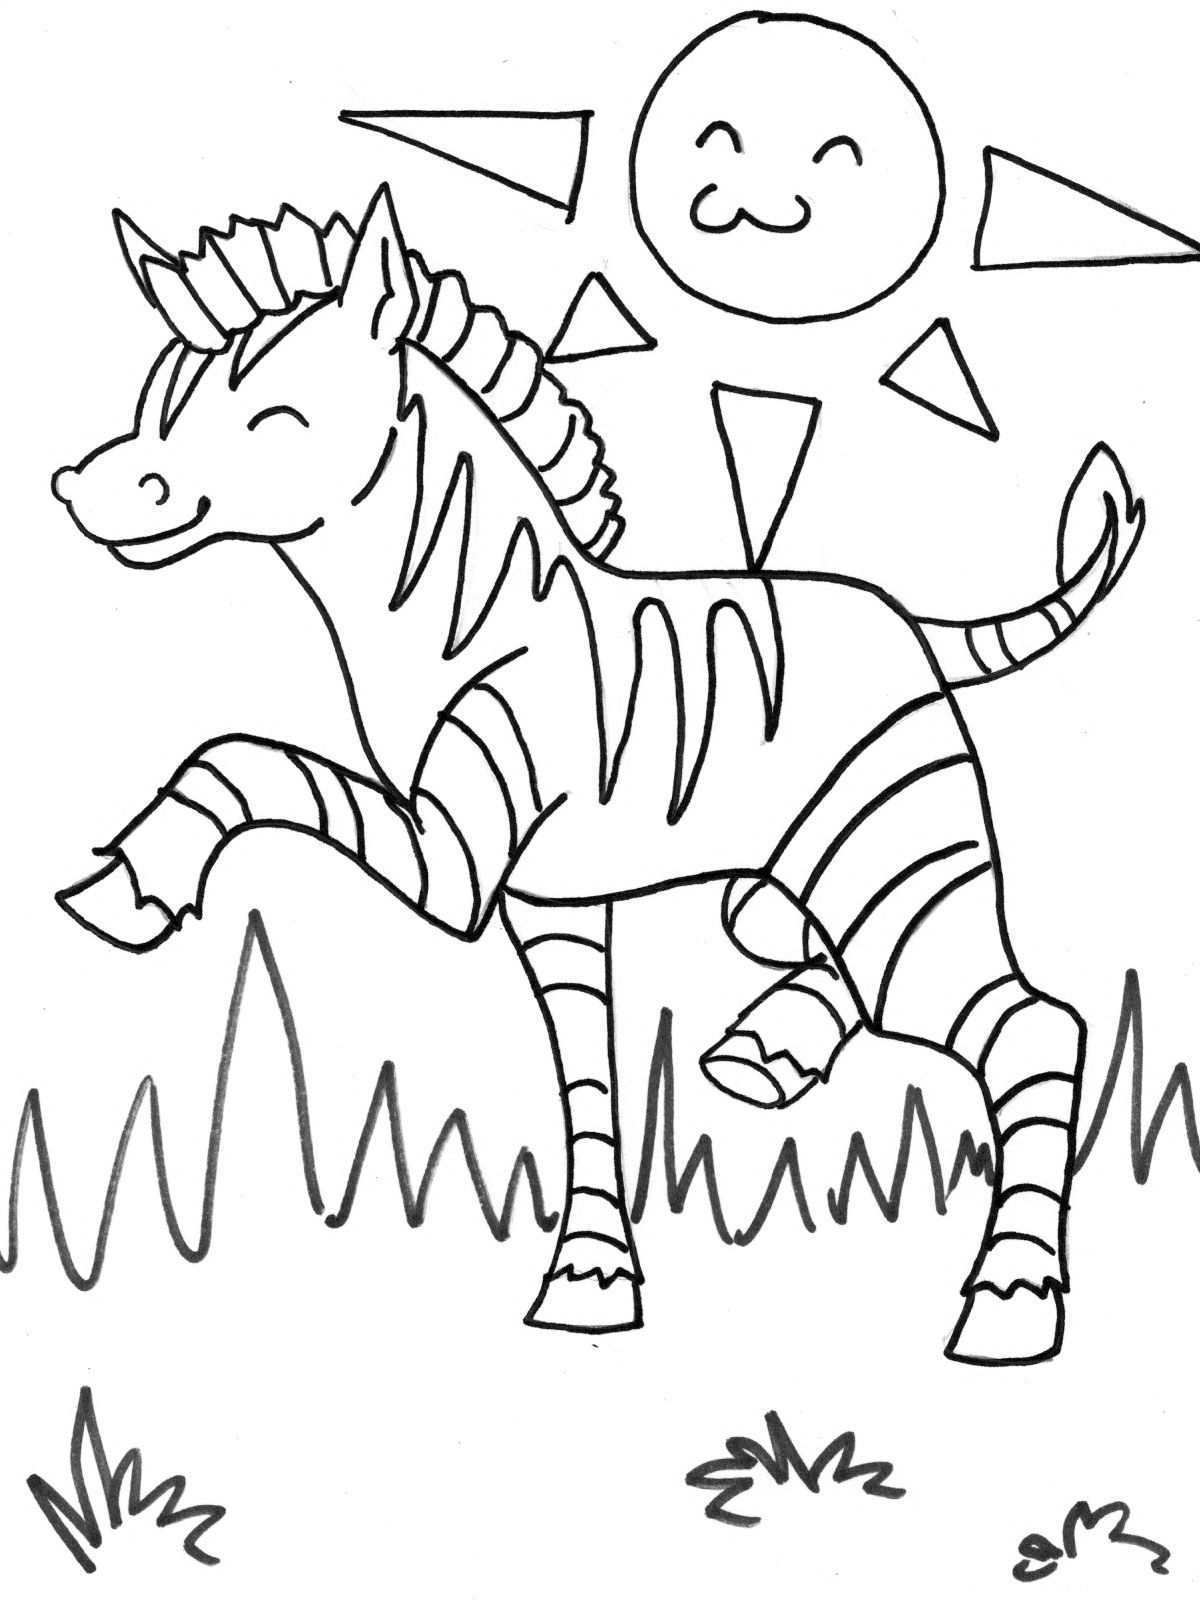 Zebra Coloring Page With Images